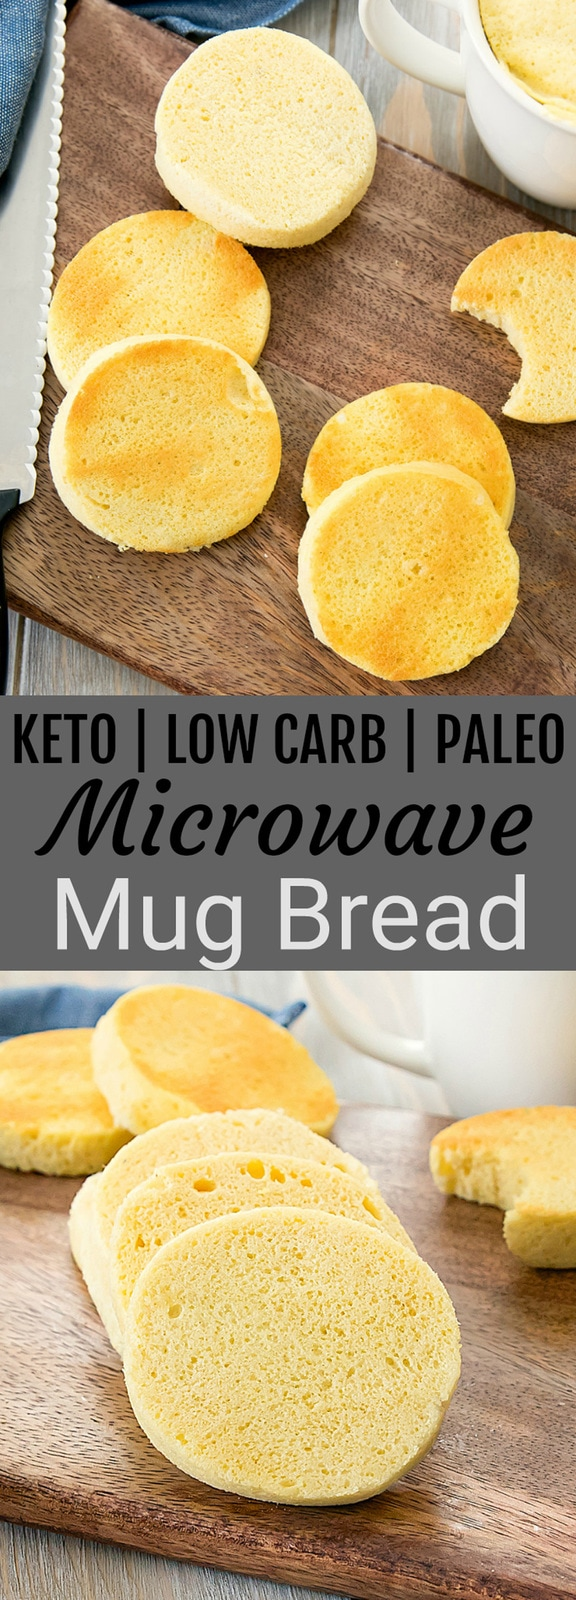 Microwave Mug Bread. Low carb, keto, paleo, gluten free. This easy bread cooks in about 2 minutes!